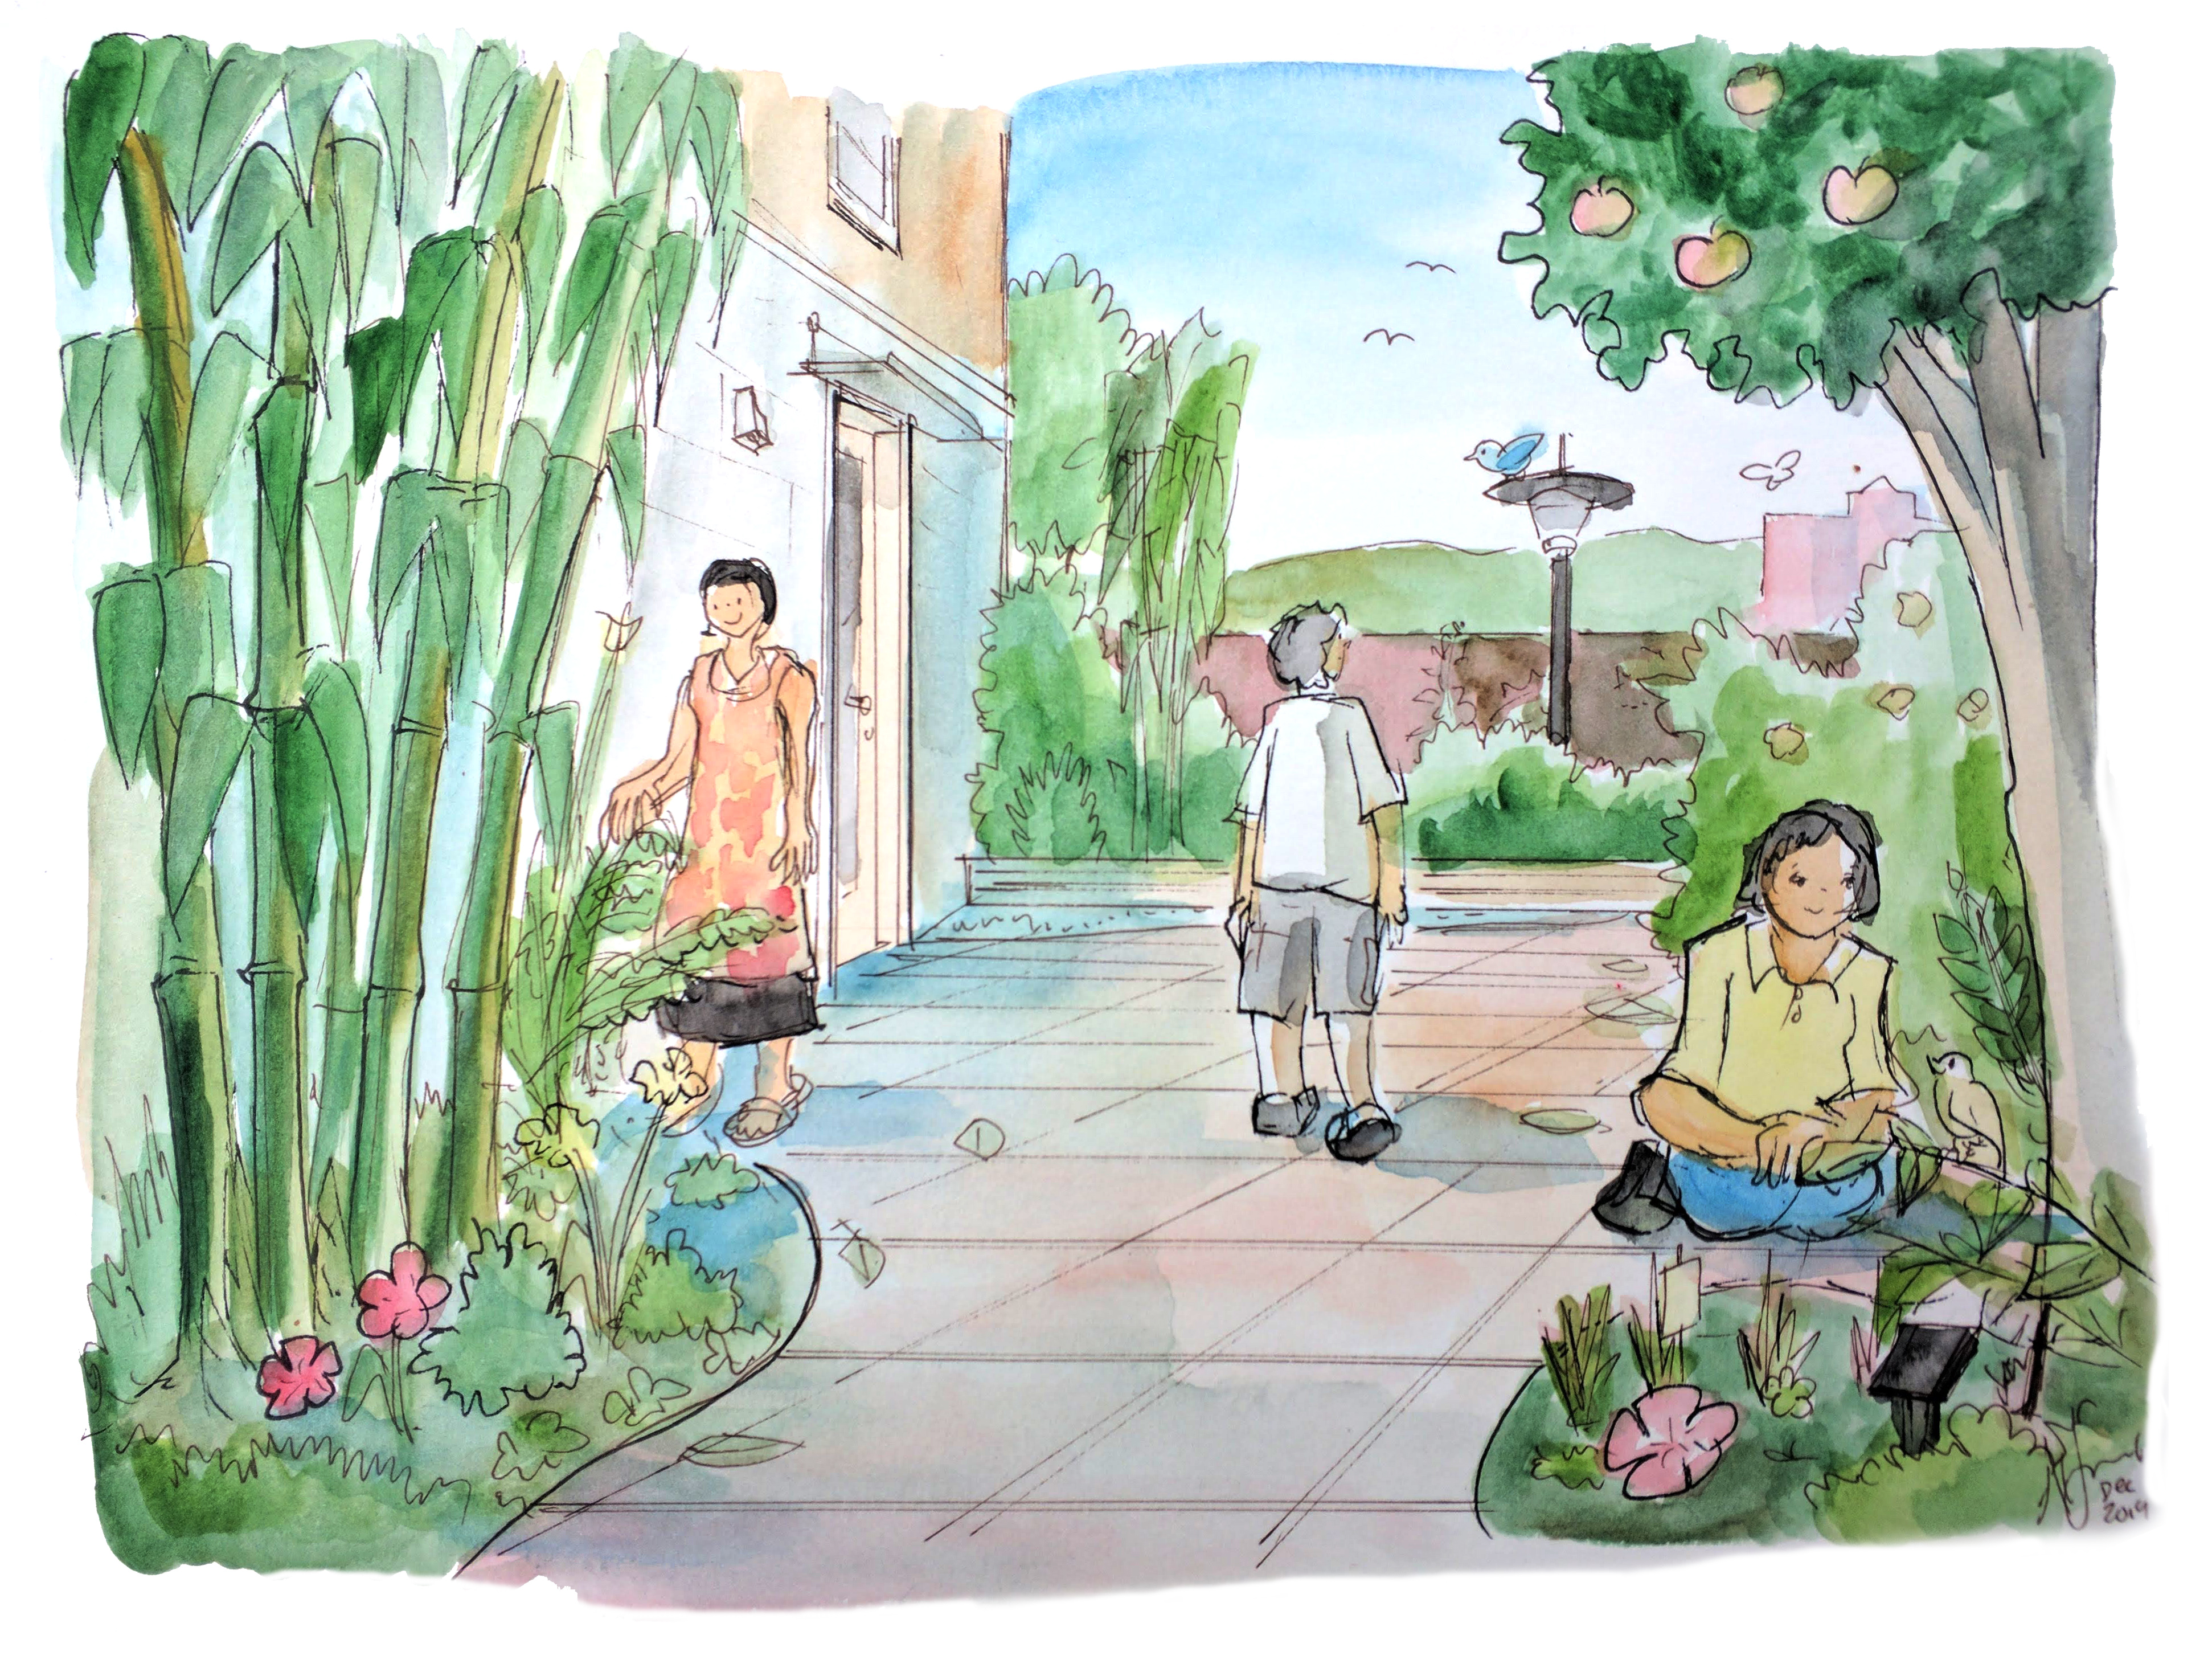 sensory garden sketch with young women sitting down, a lady water plants, and man walking through th